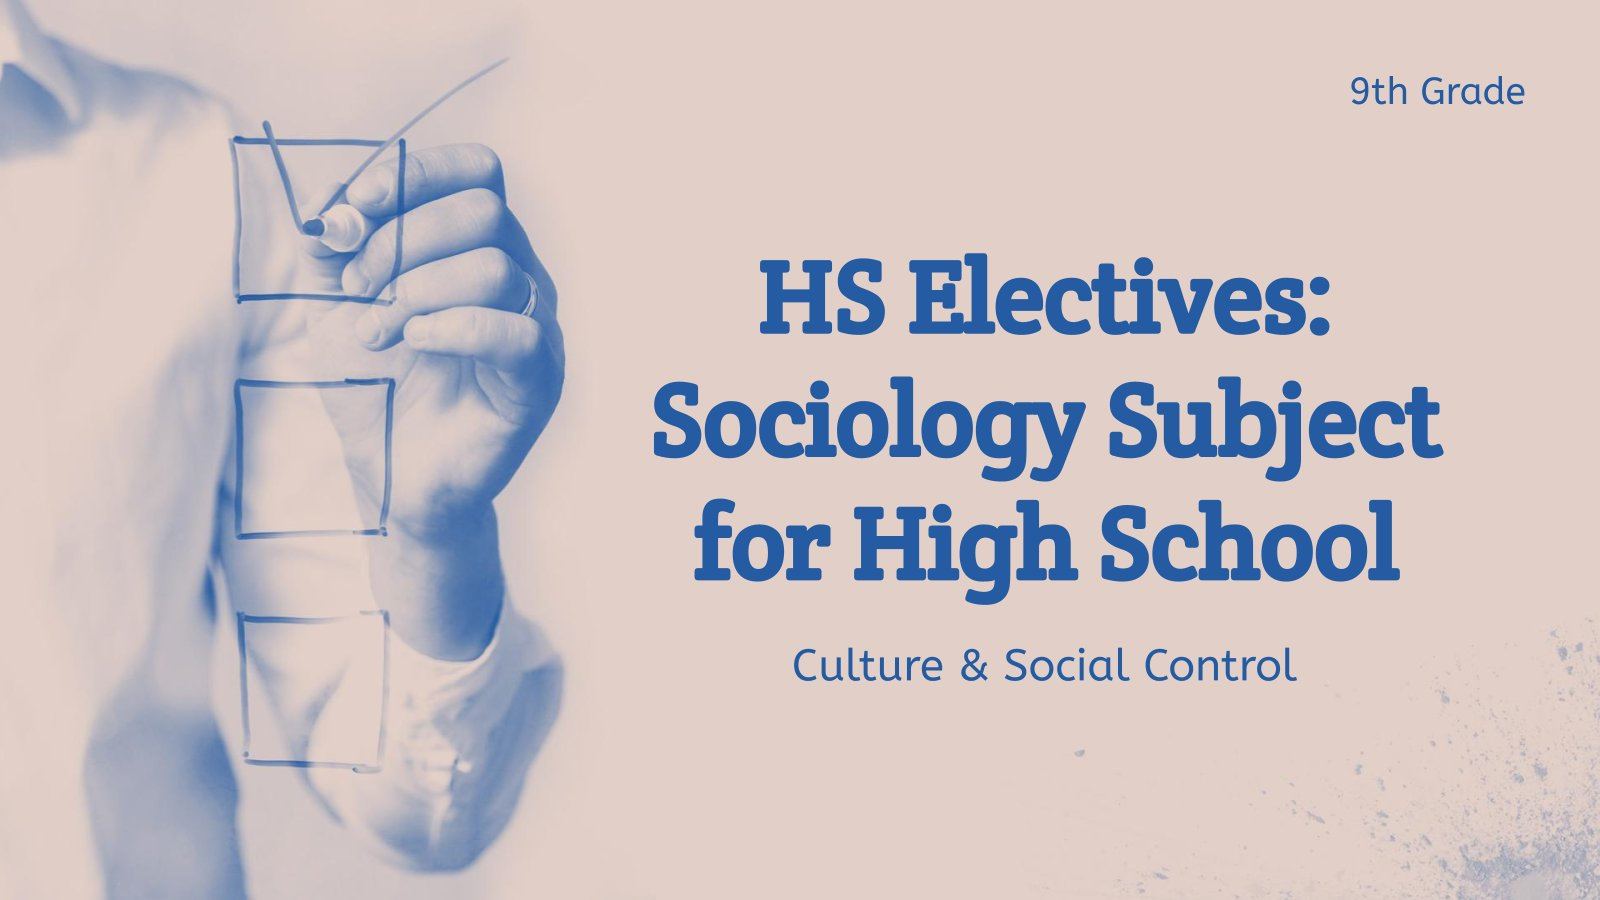 HS Electives: Sociology Subject for High School - 9th Grade: Culture & Social Control presentation template